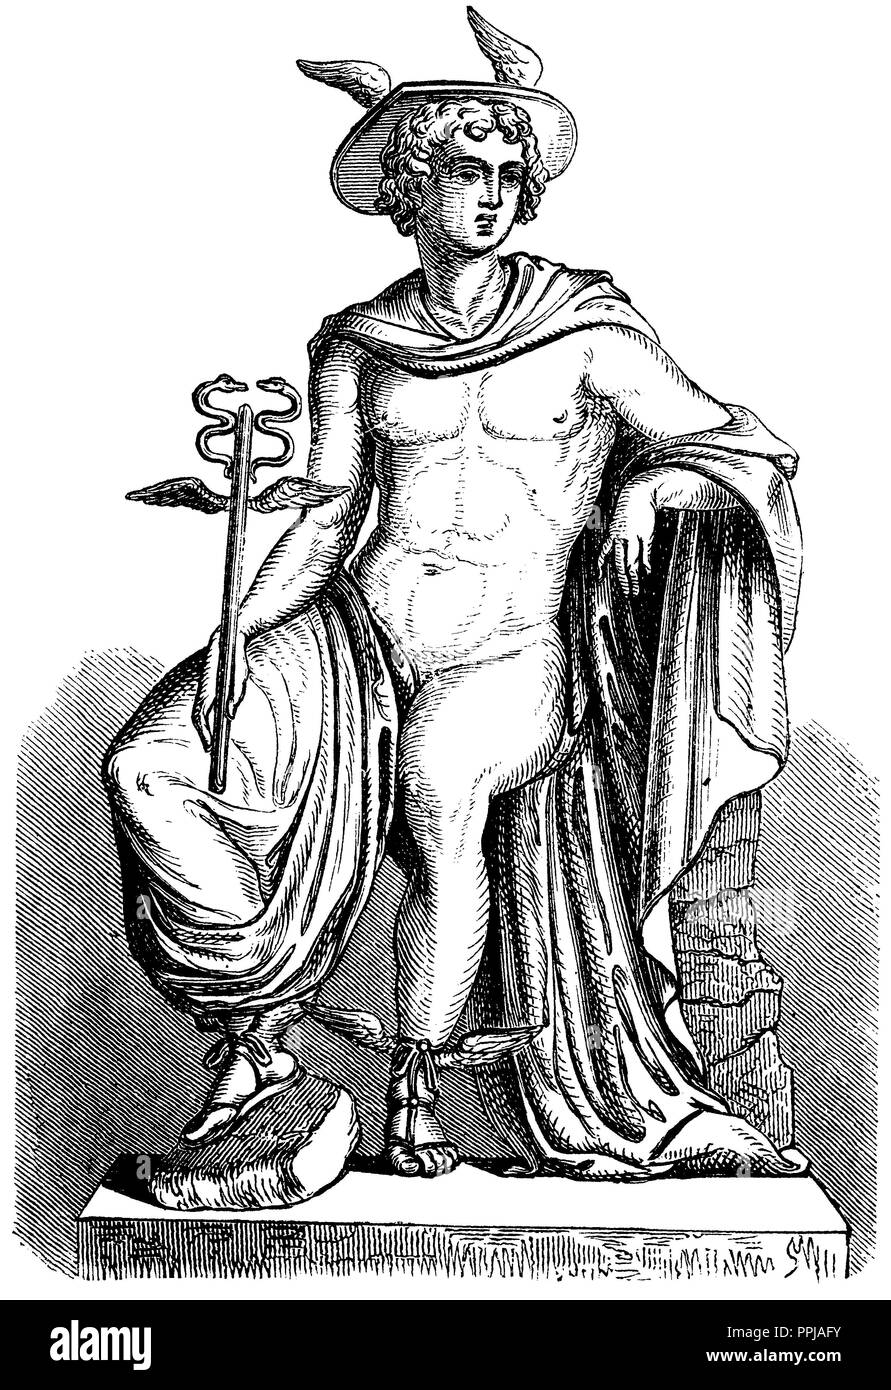 Hermes, god of traffic, travelers, merchants and shepherds. After a Pompeian mural, anonym  1867 - Stock Image